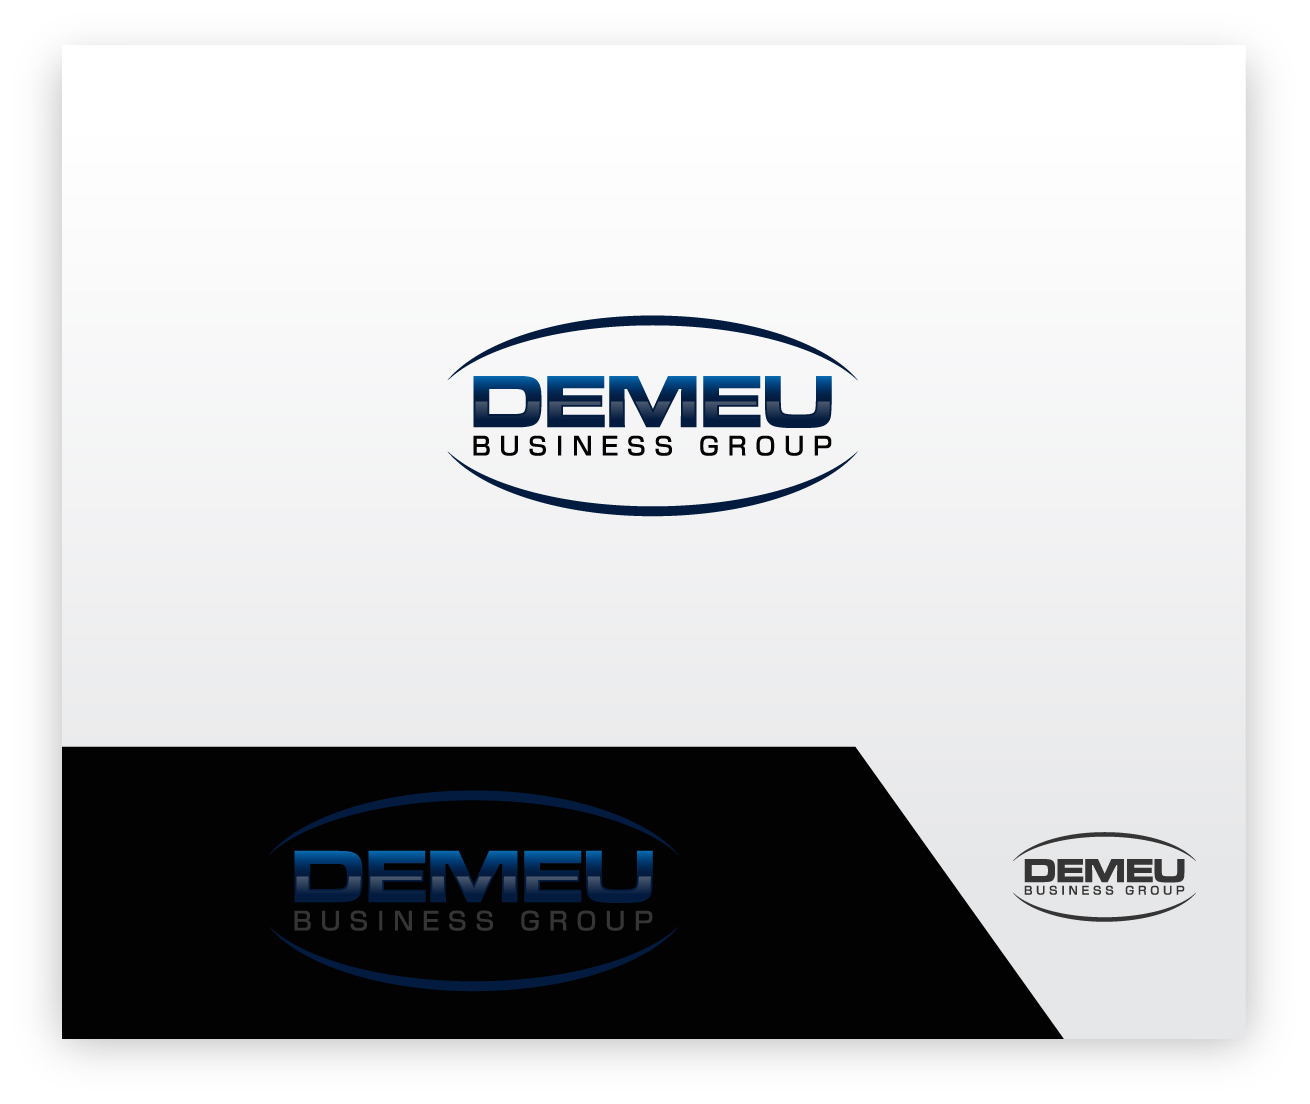 Logo Design by zoiDesign - Entry No. 140 in the Logo Design Contest Captivating Logo Design for DEMEU Business Group.